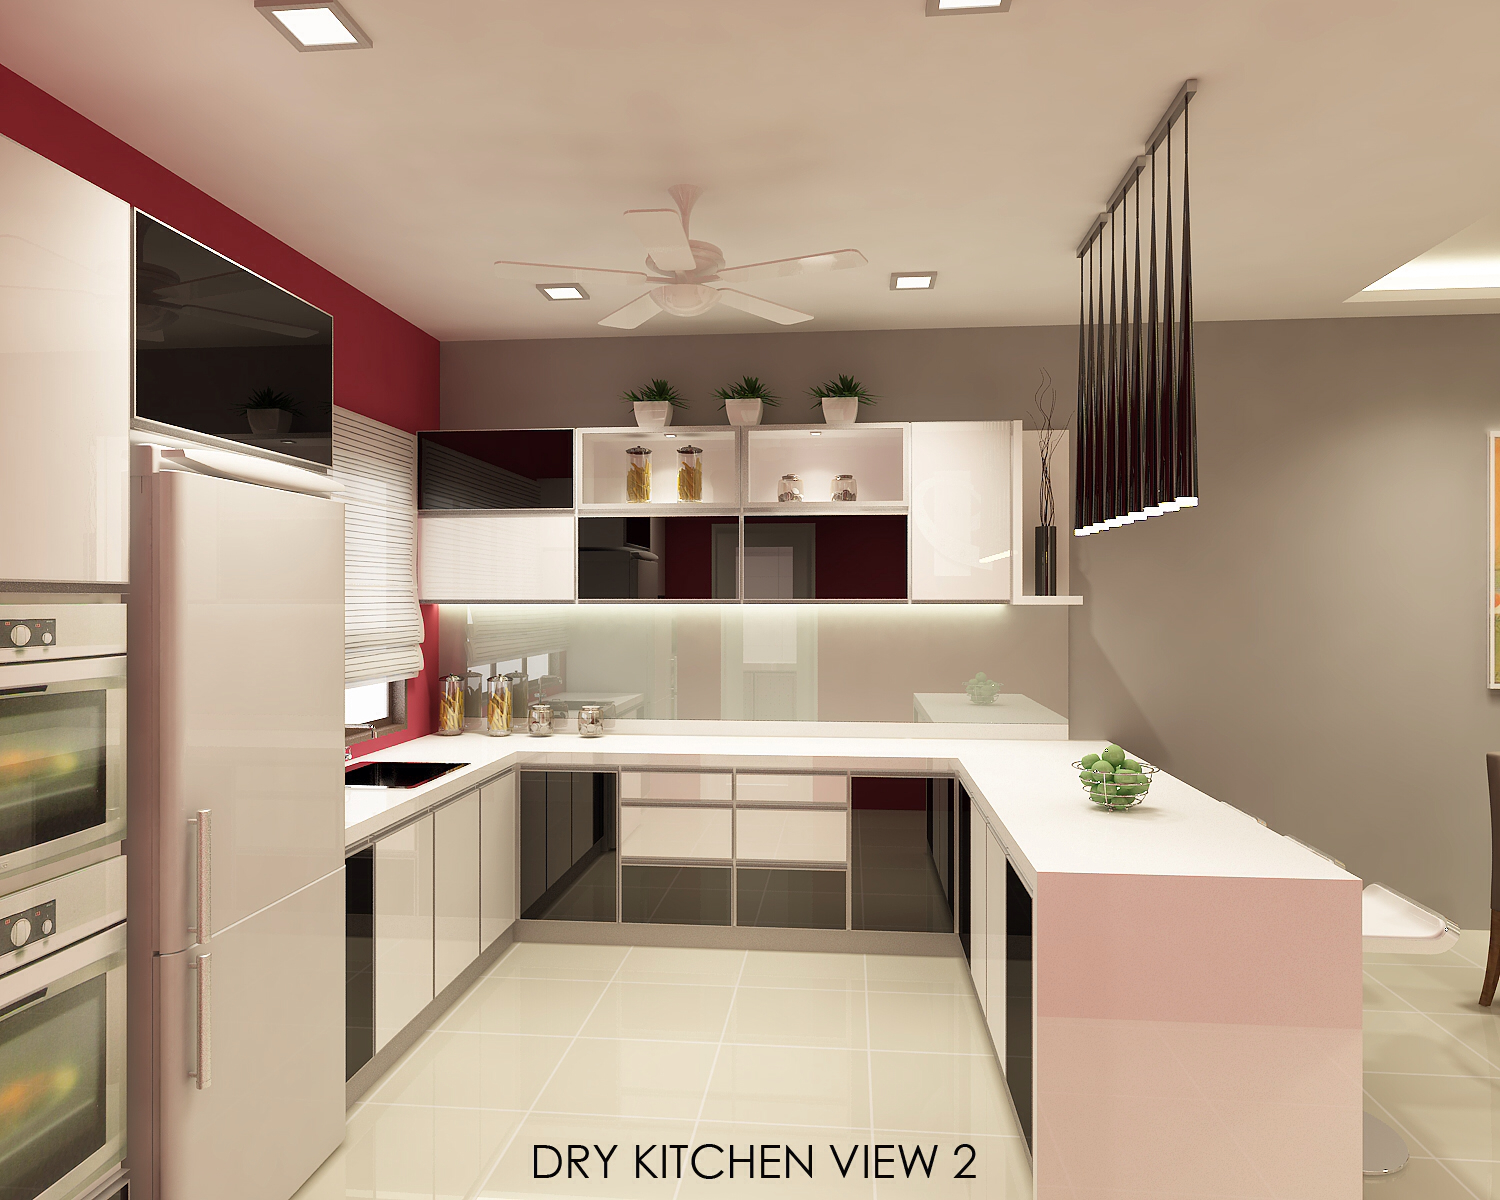 ... Images For The Wet Kitchen, Which Is Pretty Straightforward. In This  Post I Would Like To Share The 3 D Images For The Proposed Open Plan Dry  Kitchen.